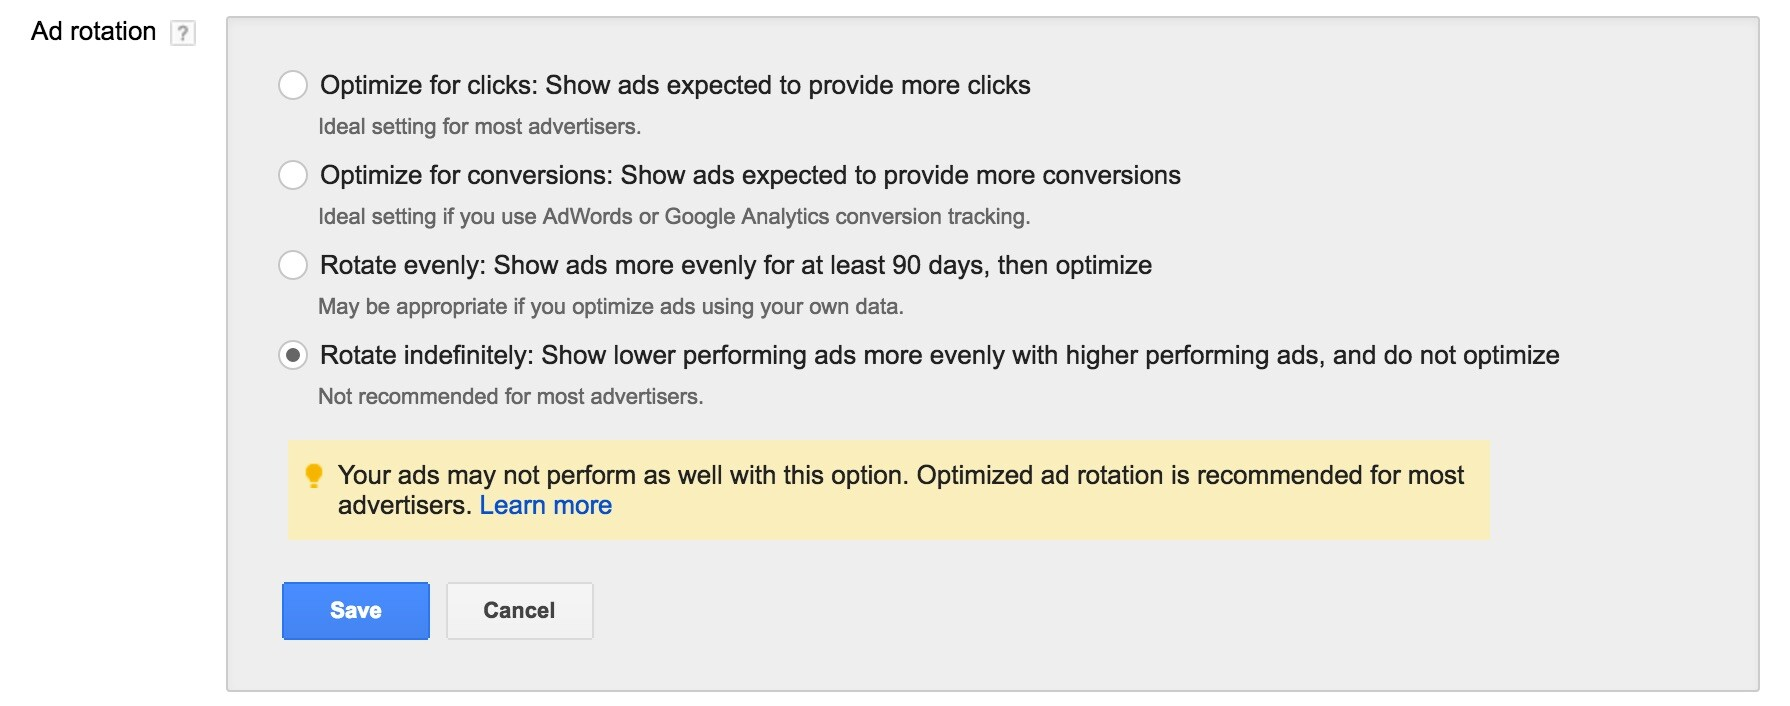 AdWords Ad Rotation Option